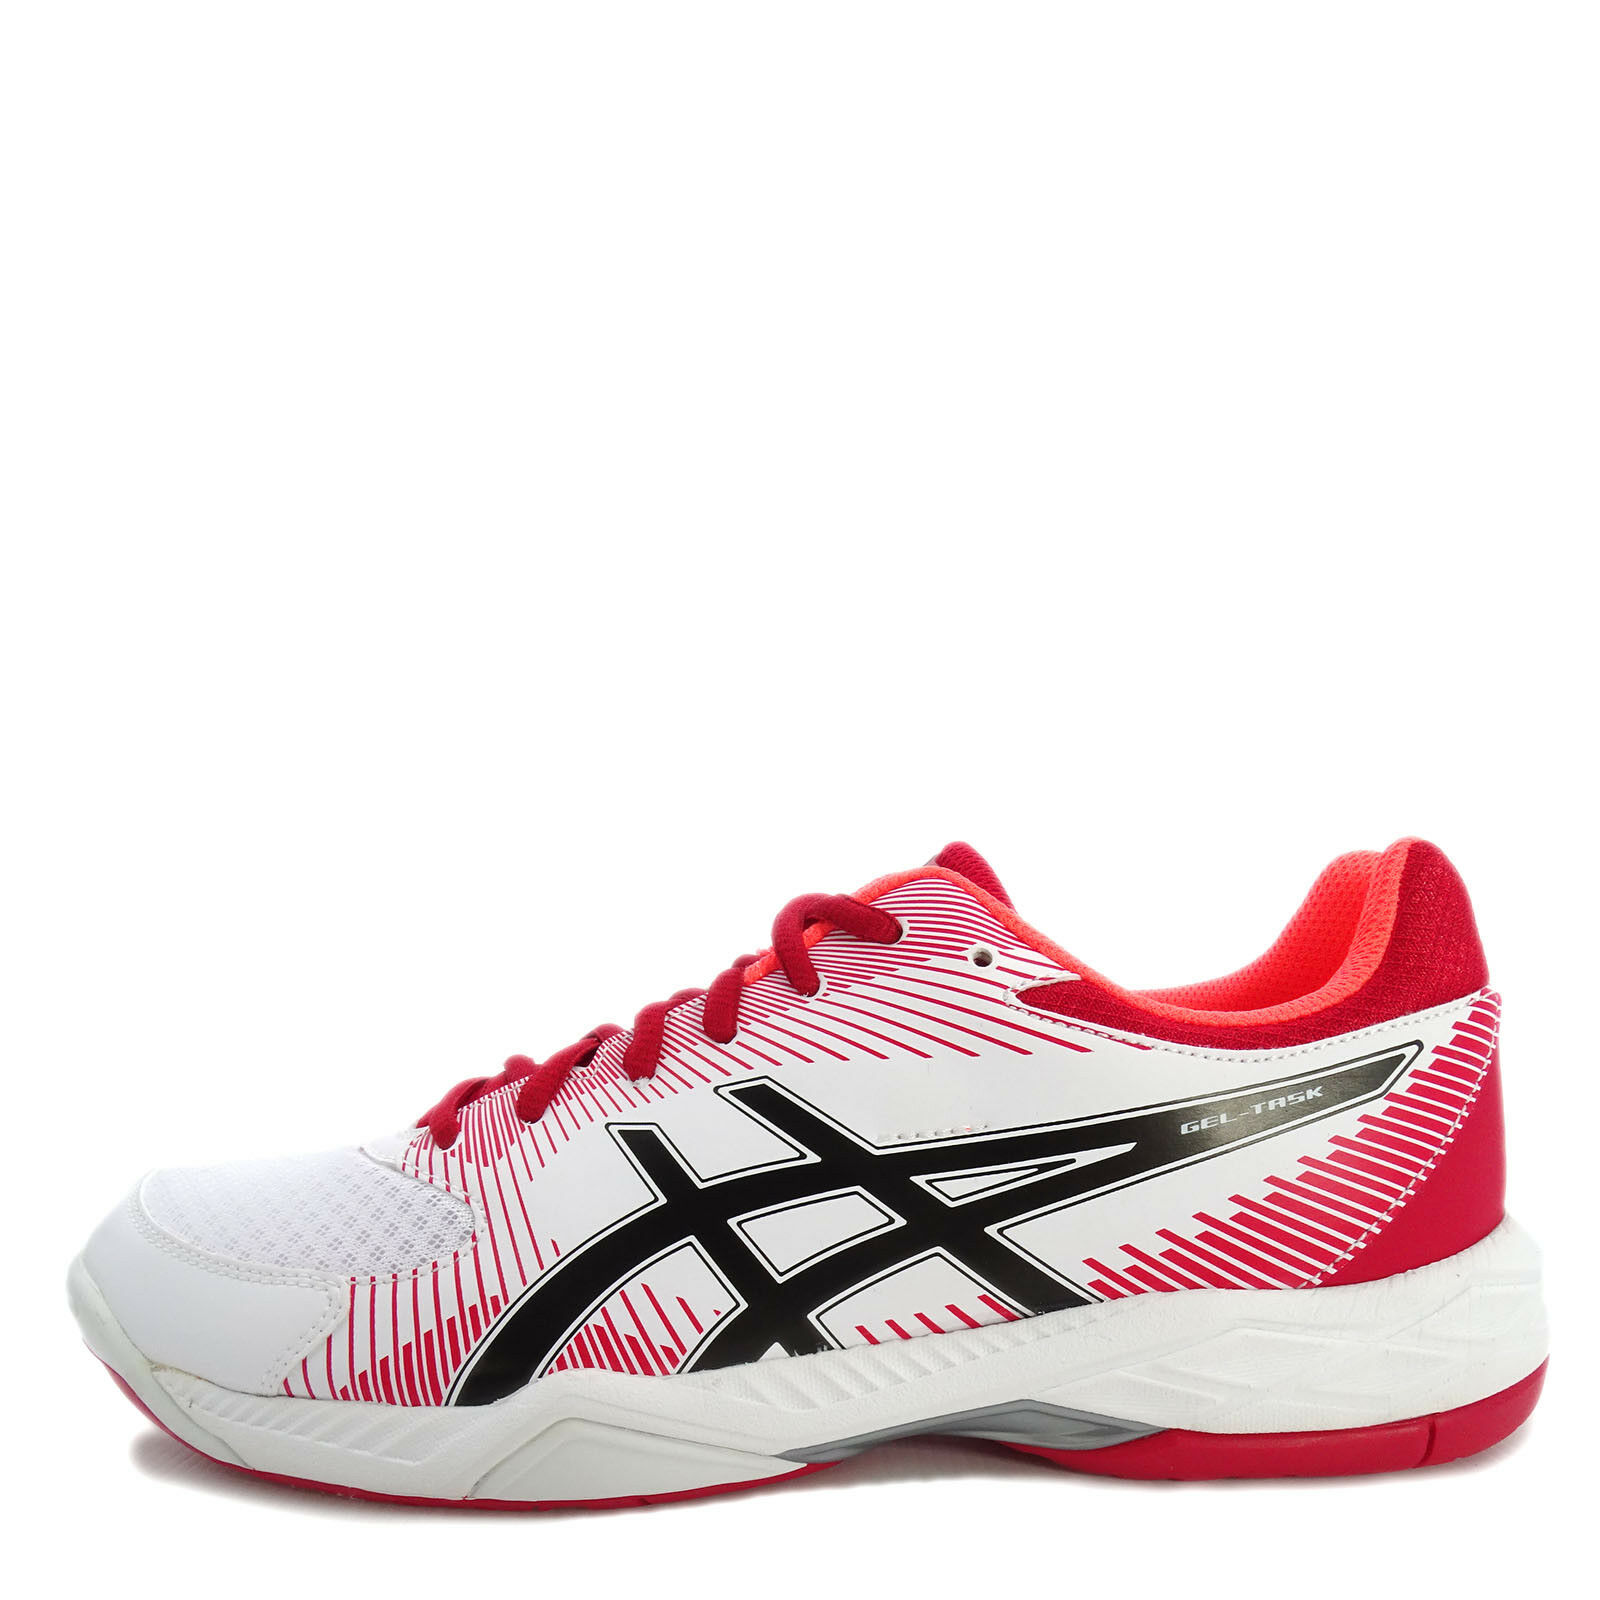 Asics GEL-Task [B704Y-0123] Men Volleyball Badminton shoes shoes shoes White Red-Black 1a9599